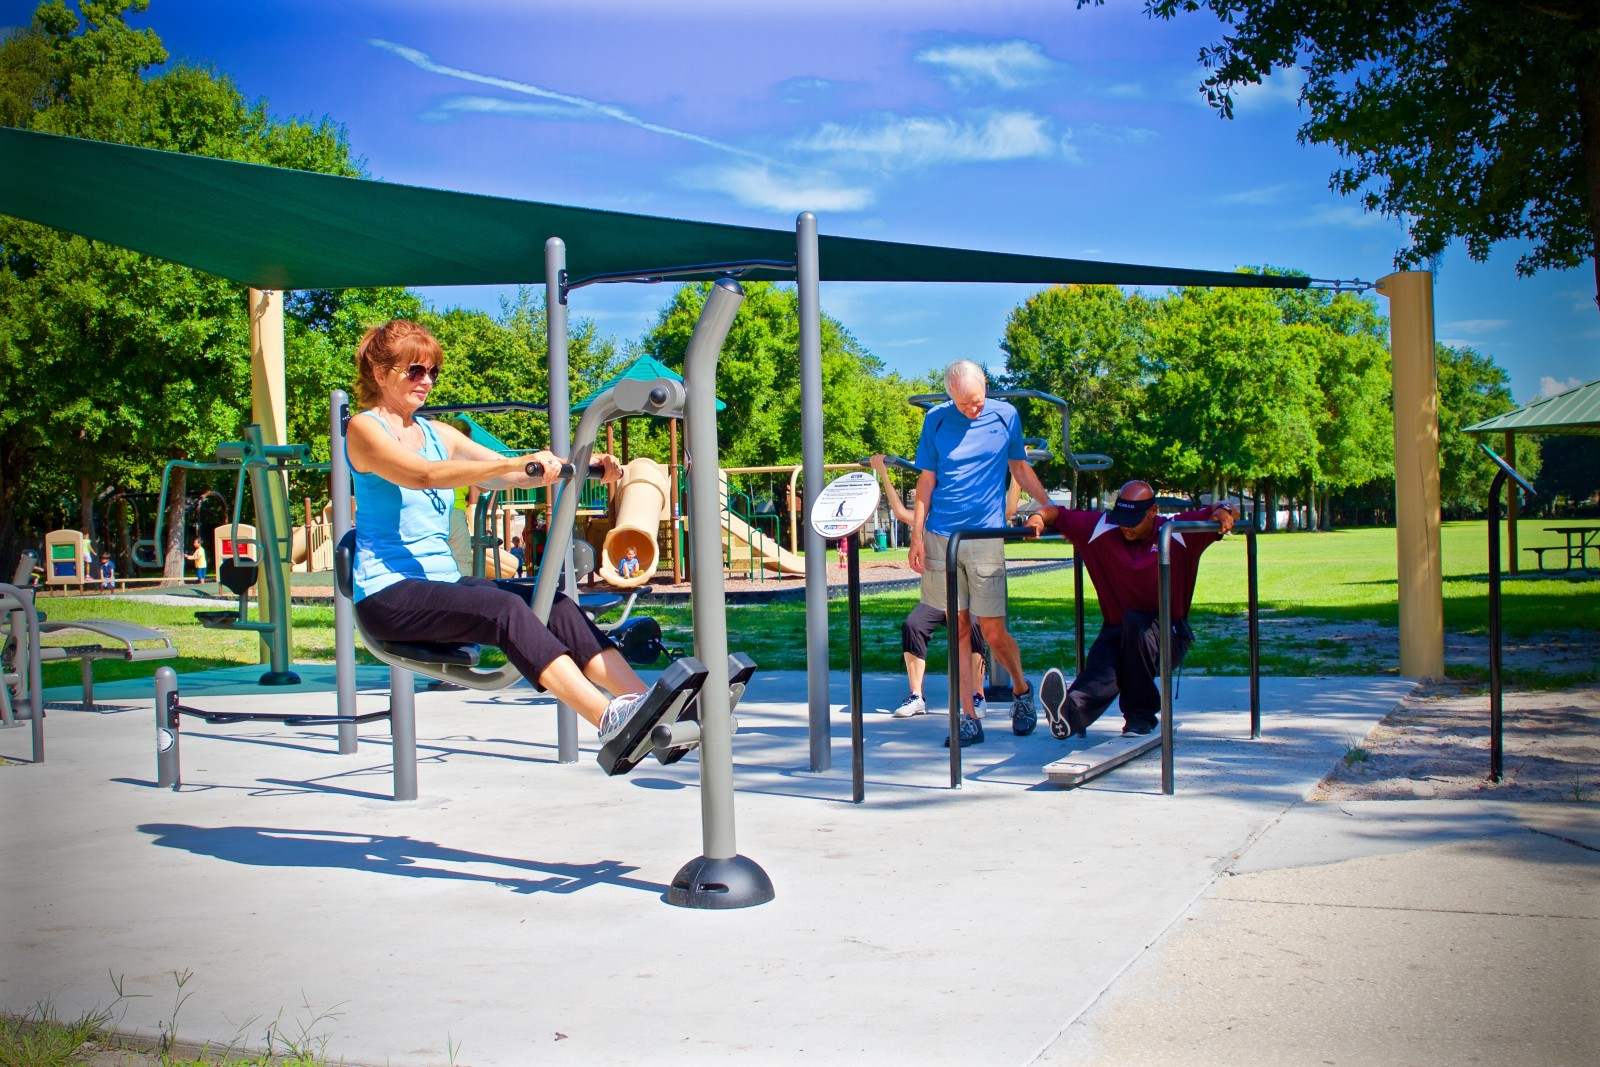 GameTime Fitness Park in Tampa, Florida Serves Adults of All Ages and Abilities